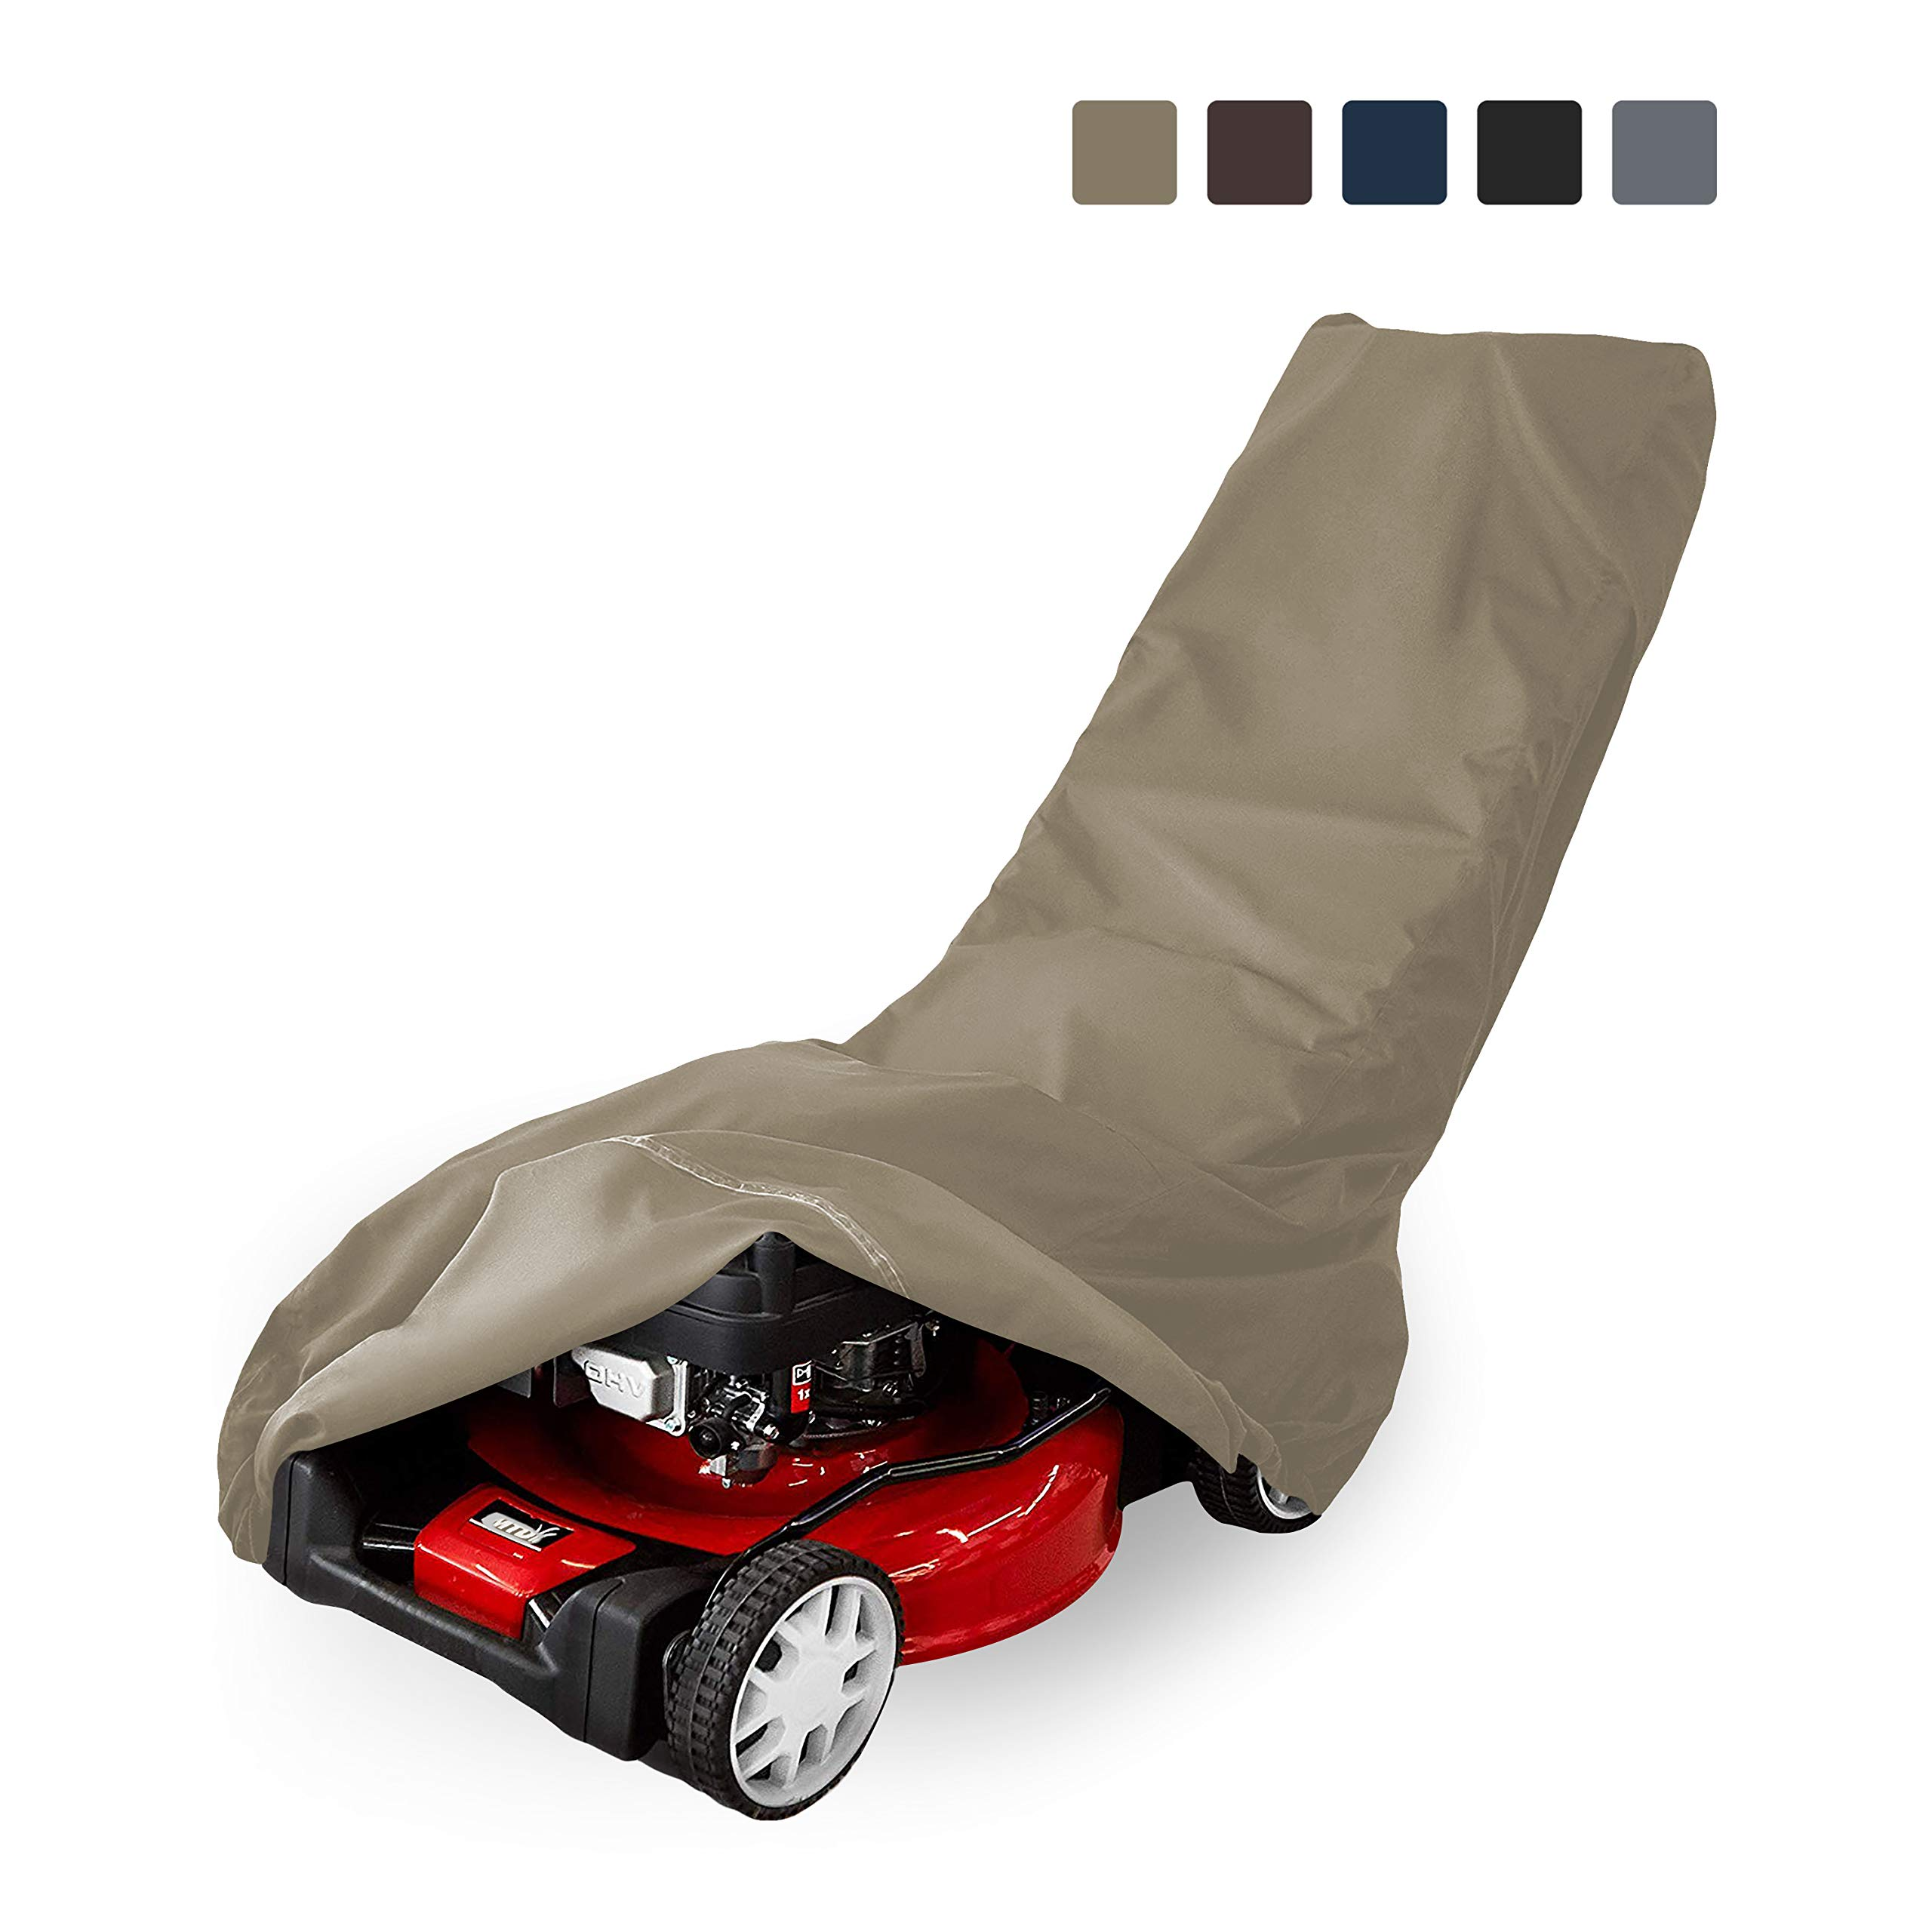 Lawn Mower Cover 12 Oz Waterproof - Customize Cover with Any Size - 100% UV & Weather Resistant Grass Mower Cover with Air Pocket and Drawstring with Snug Fit (57'' W x 39'' D x 44'' H, Beige)